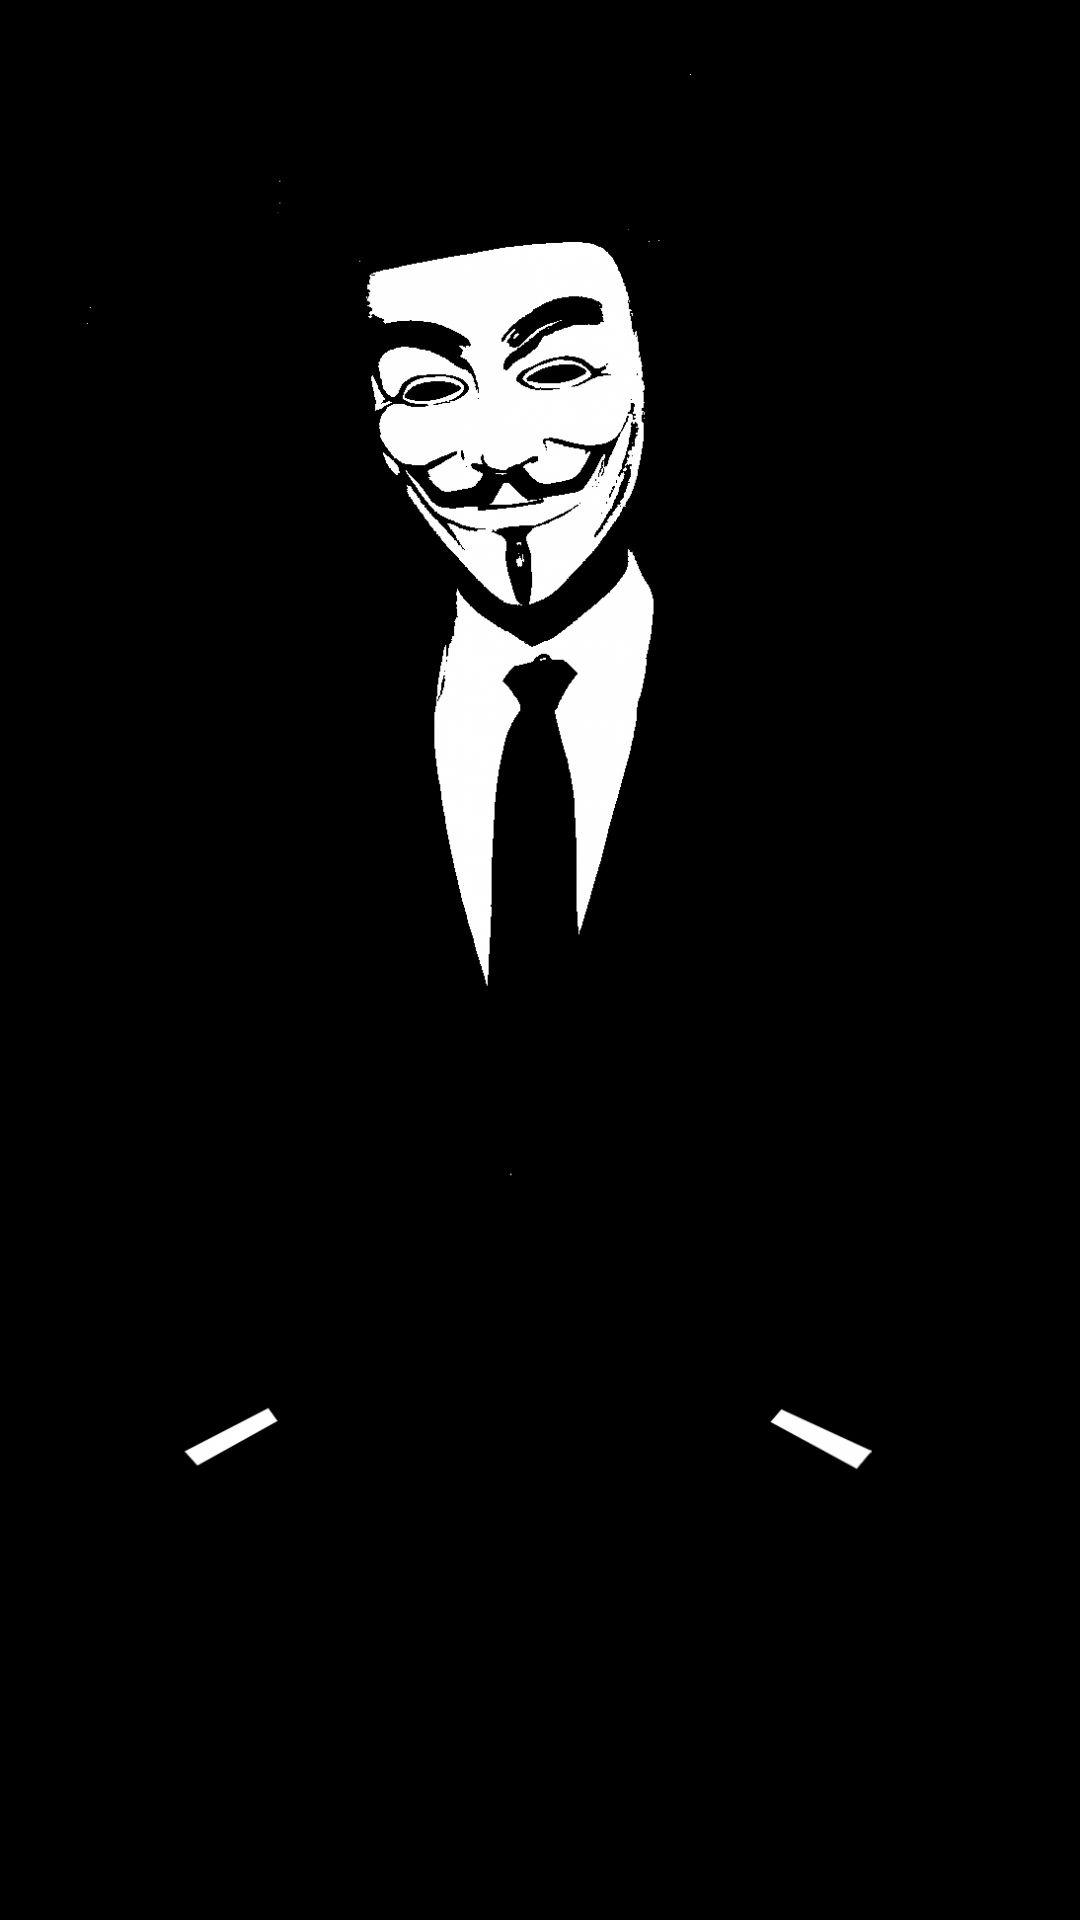 Wallpaper iphone hacker - Hd Anonymous Wallpaper For Iphone